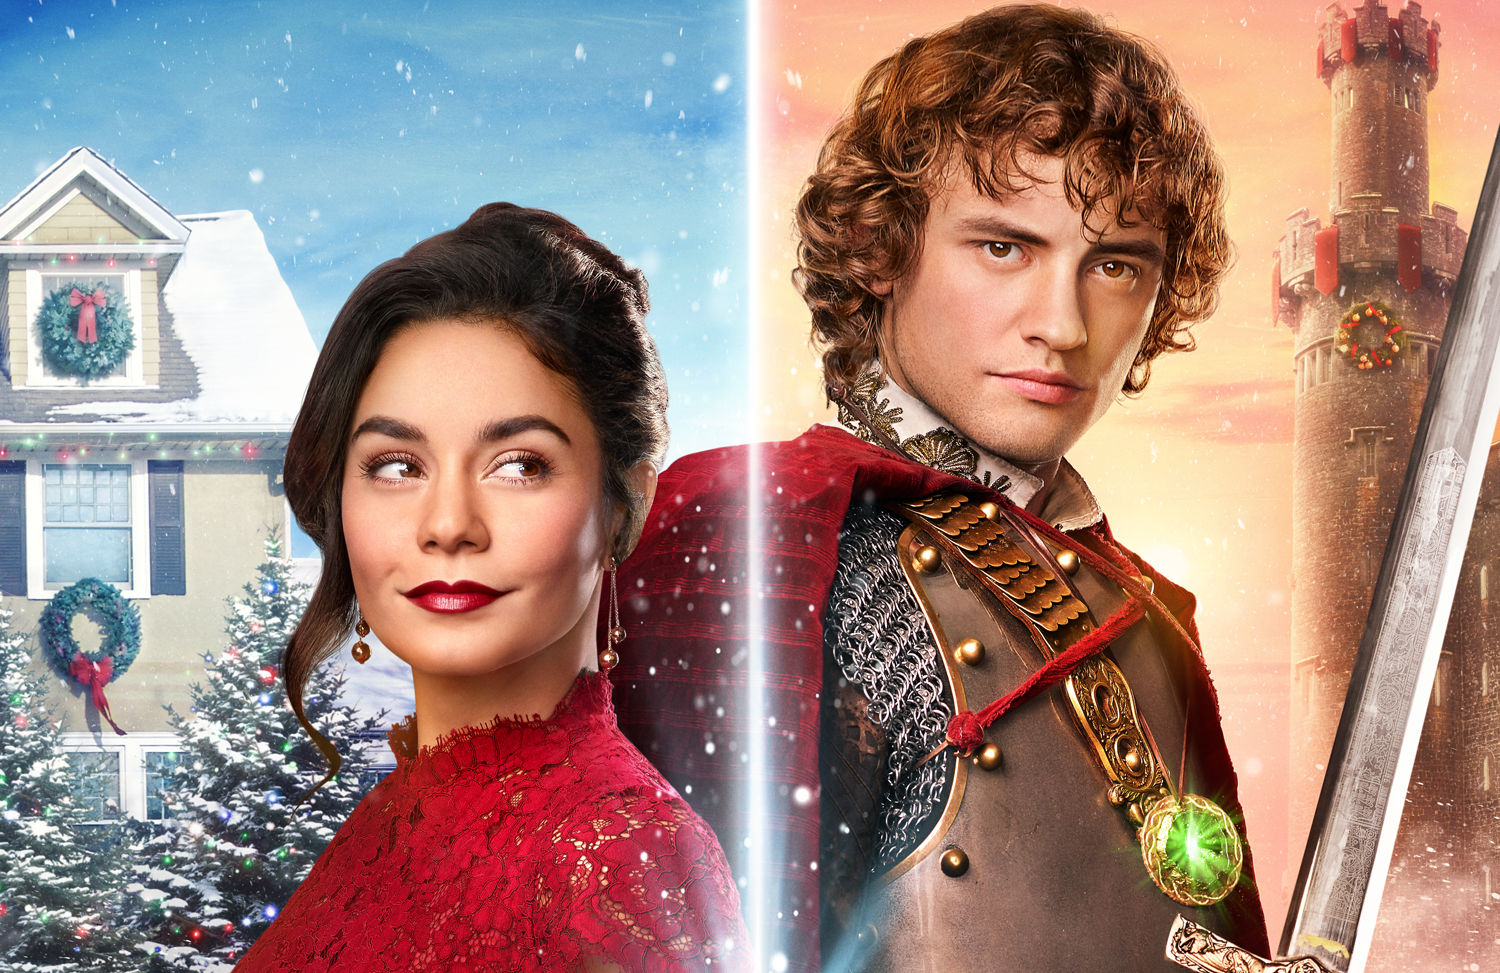 Vanessa Hudgens and Josh Whitehouse in The Knight Before Christmas. (Netflix)